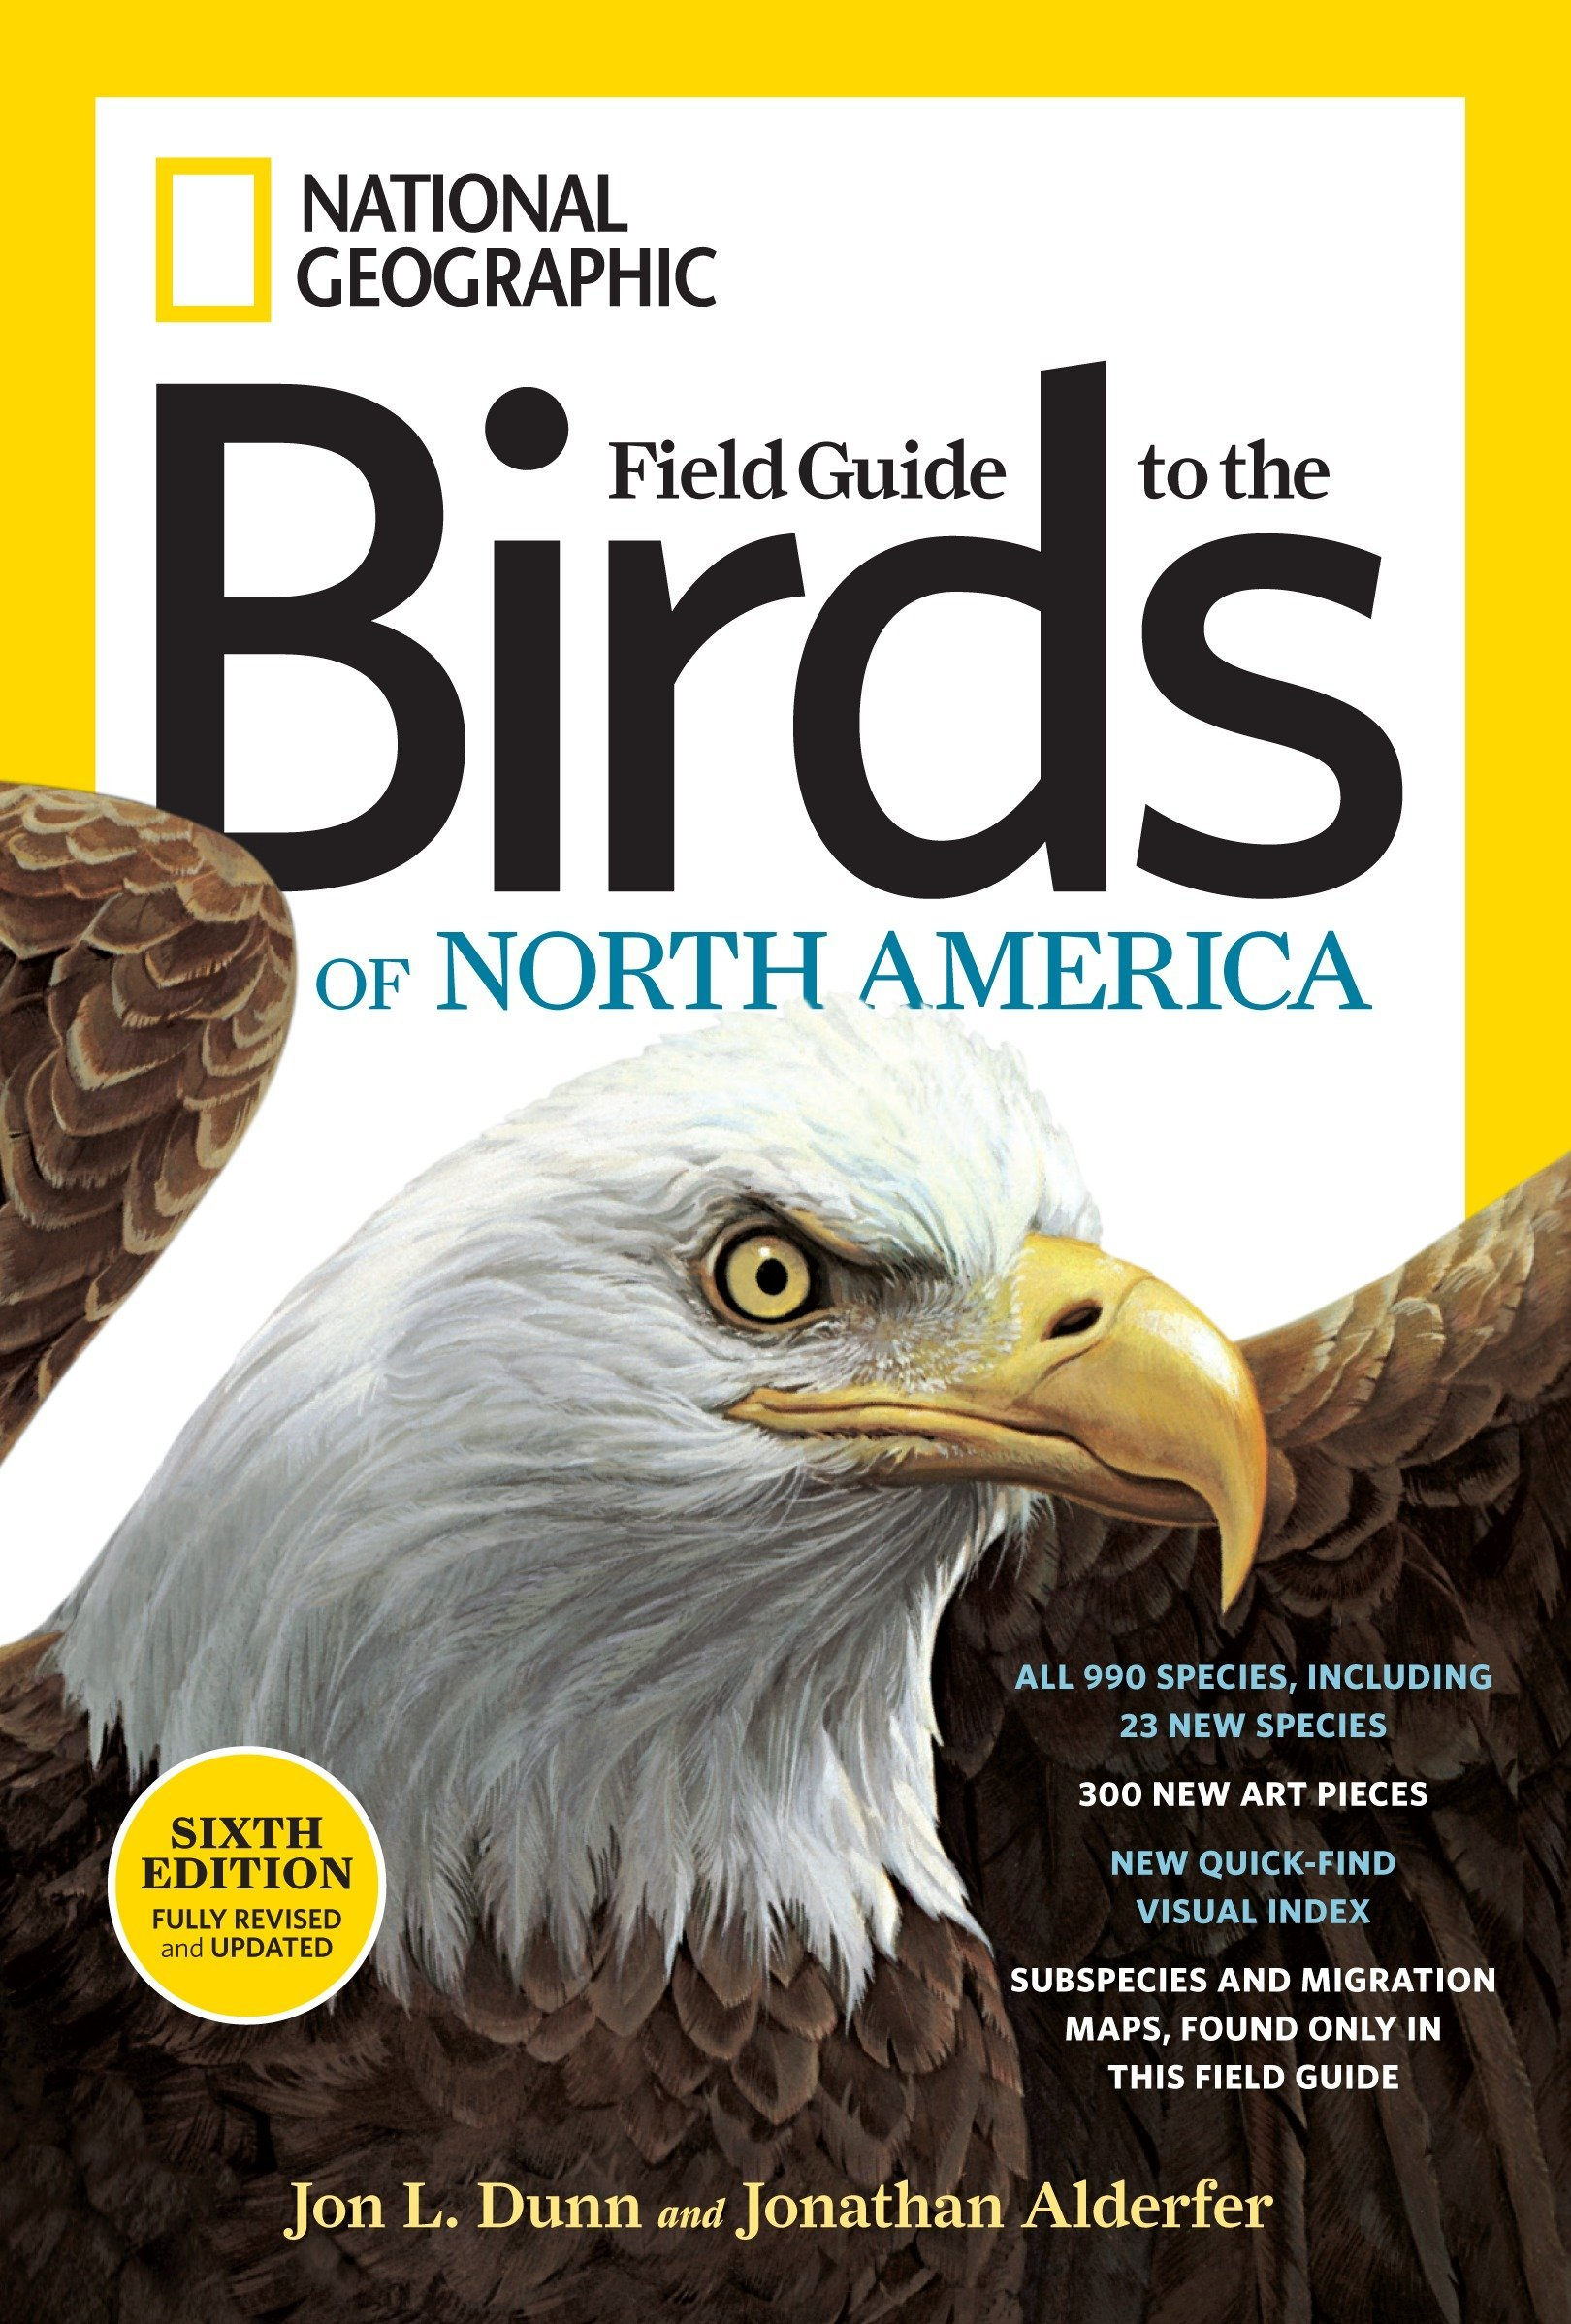 National Geographic Field Guide to the Birds of North America, Sixth Edition product image